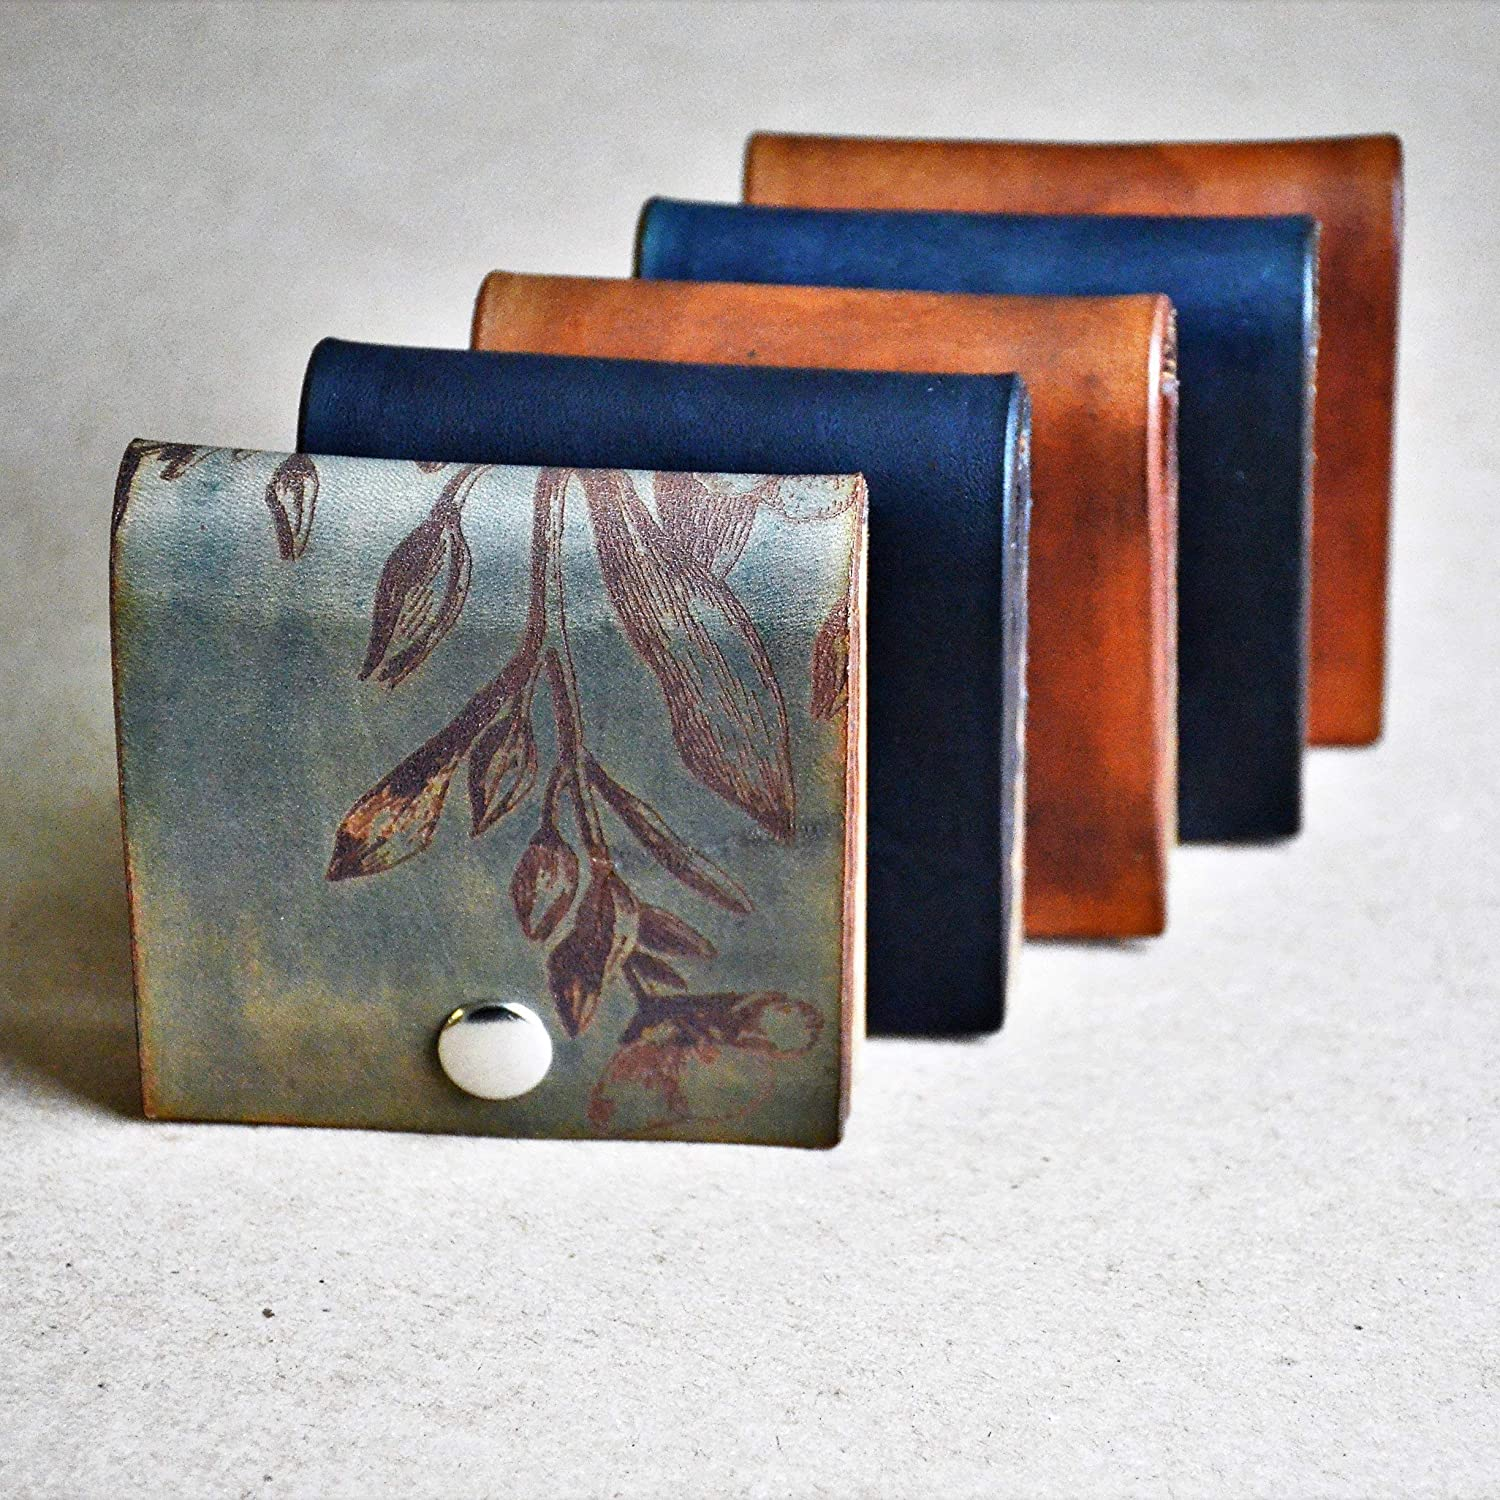 Amazon.com: Square Business Card Wallet//Holder Case//Oiled ...